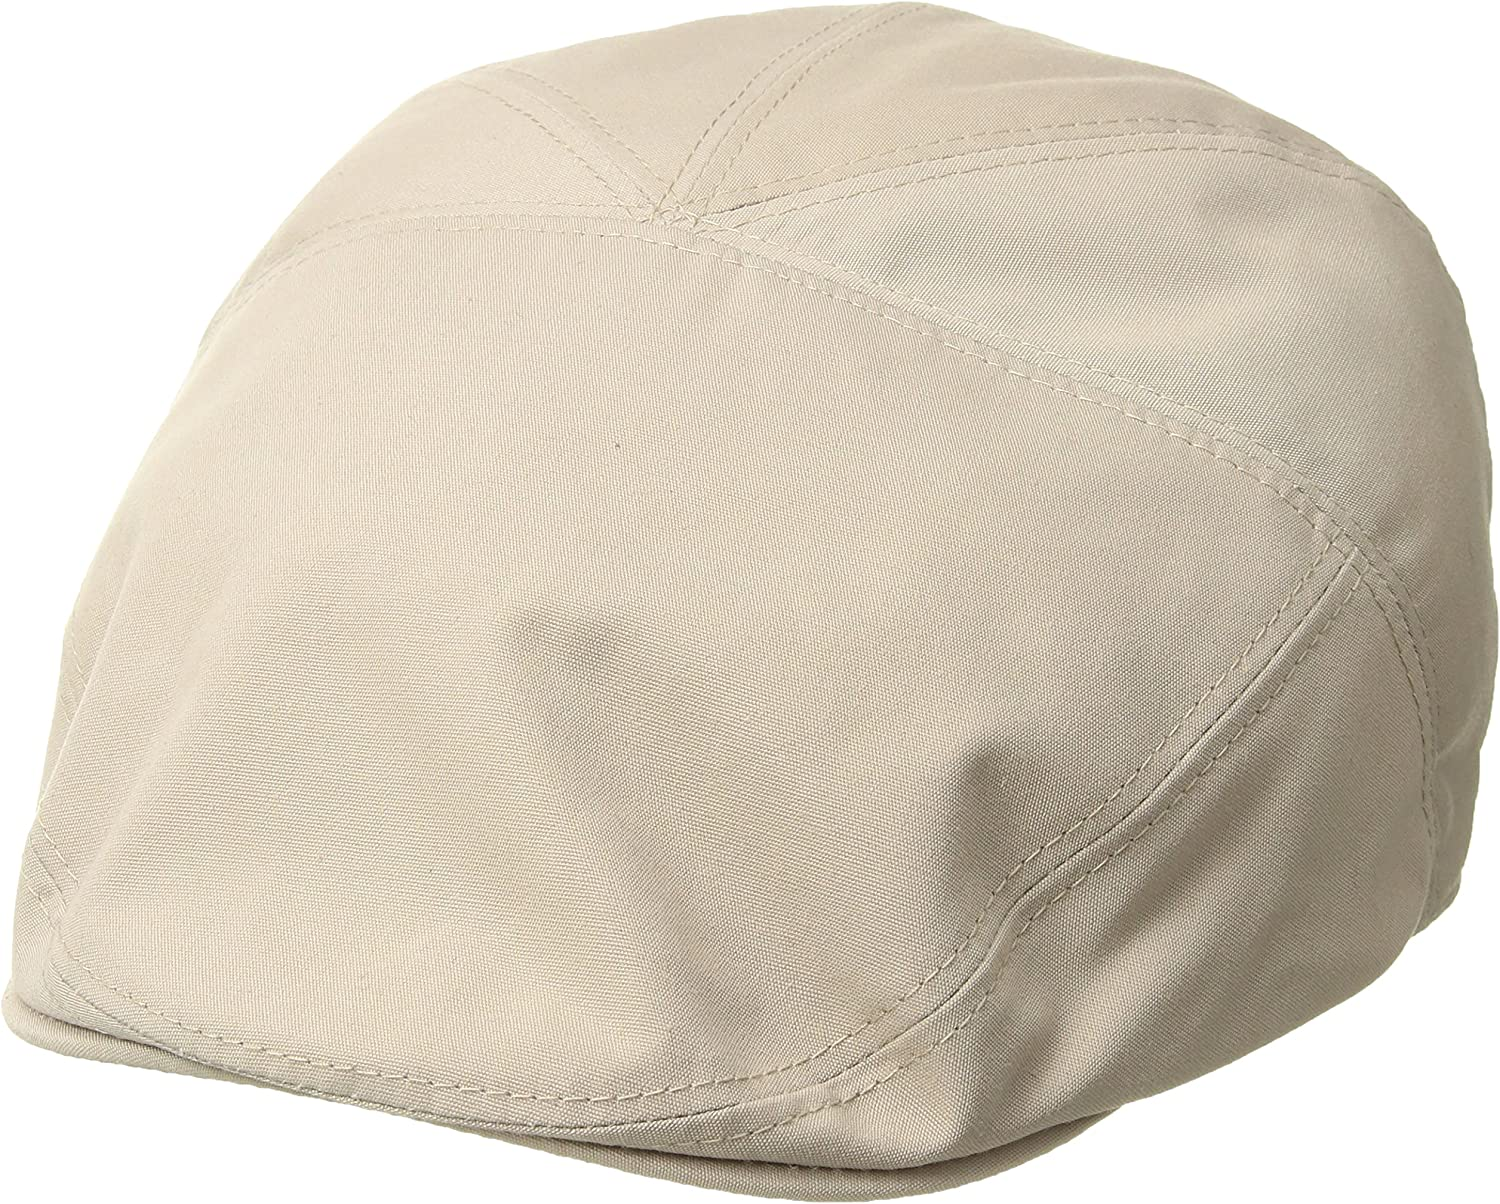 Bailey of Challenge the lowest price Japan ☆ Hollywood New life Men's Graham Rain Flat Ivy Paneled Cap